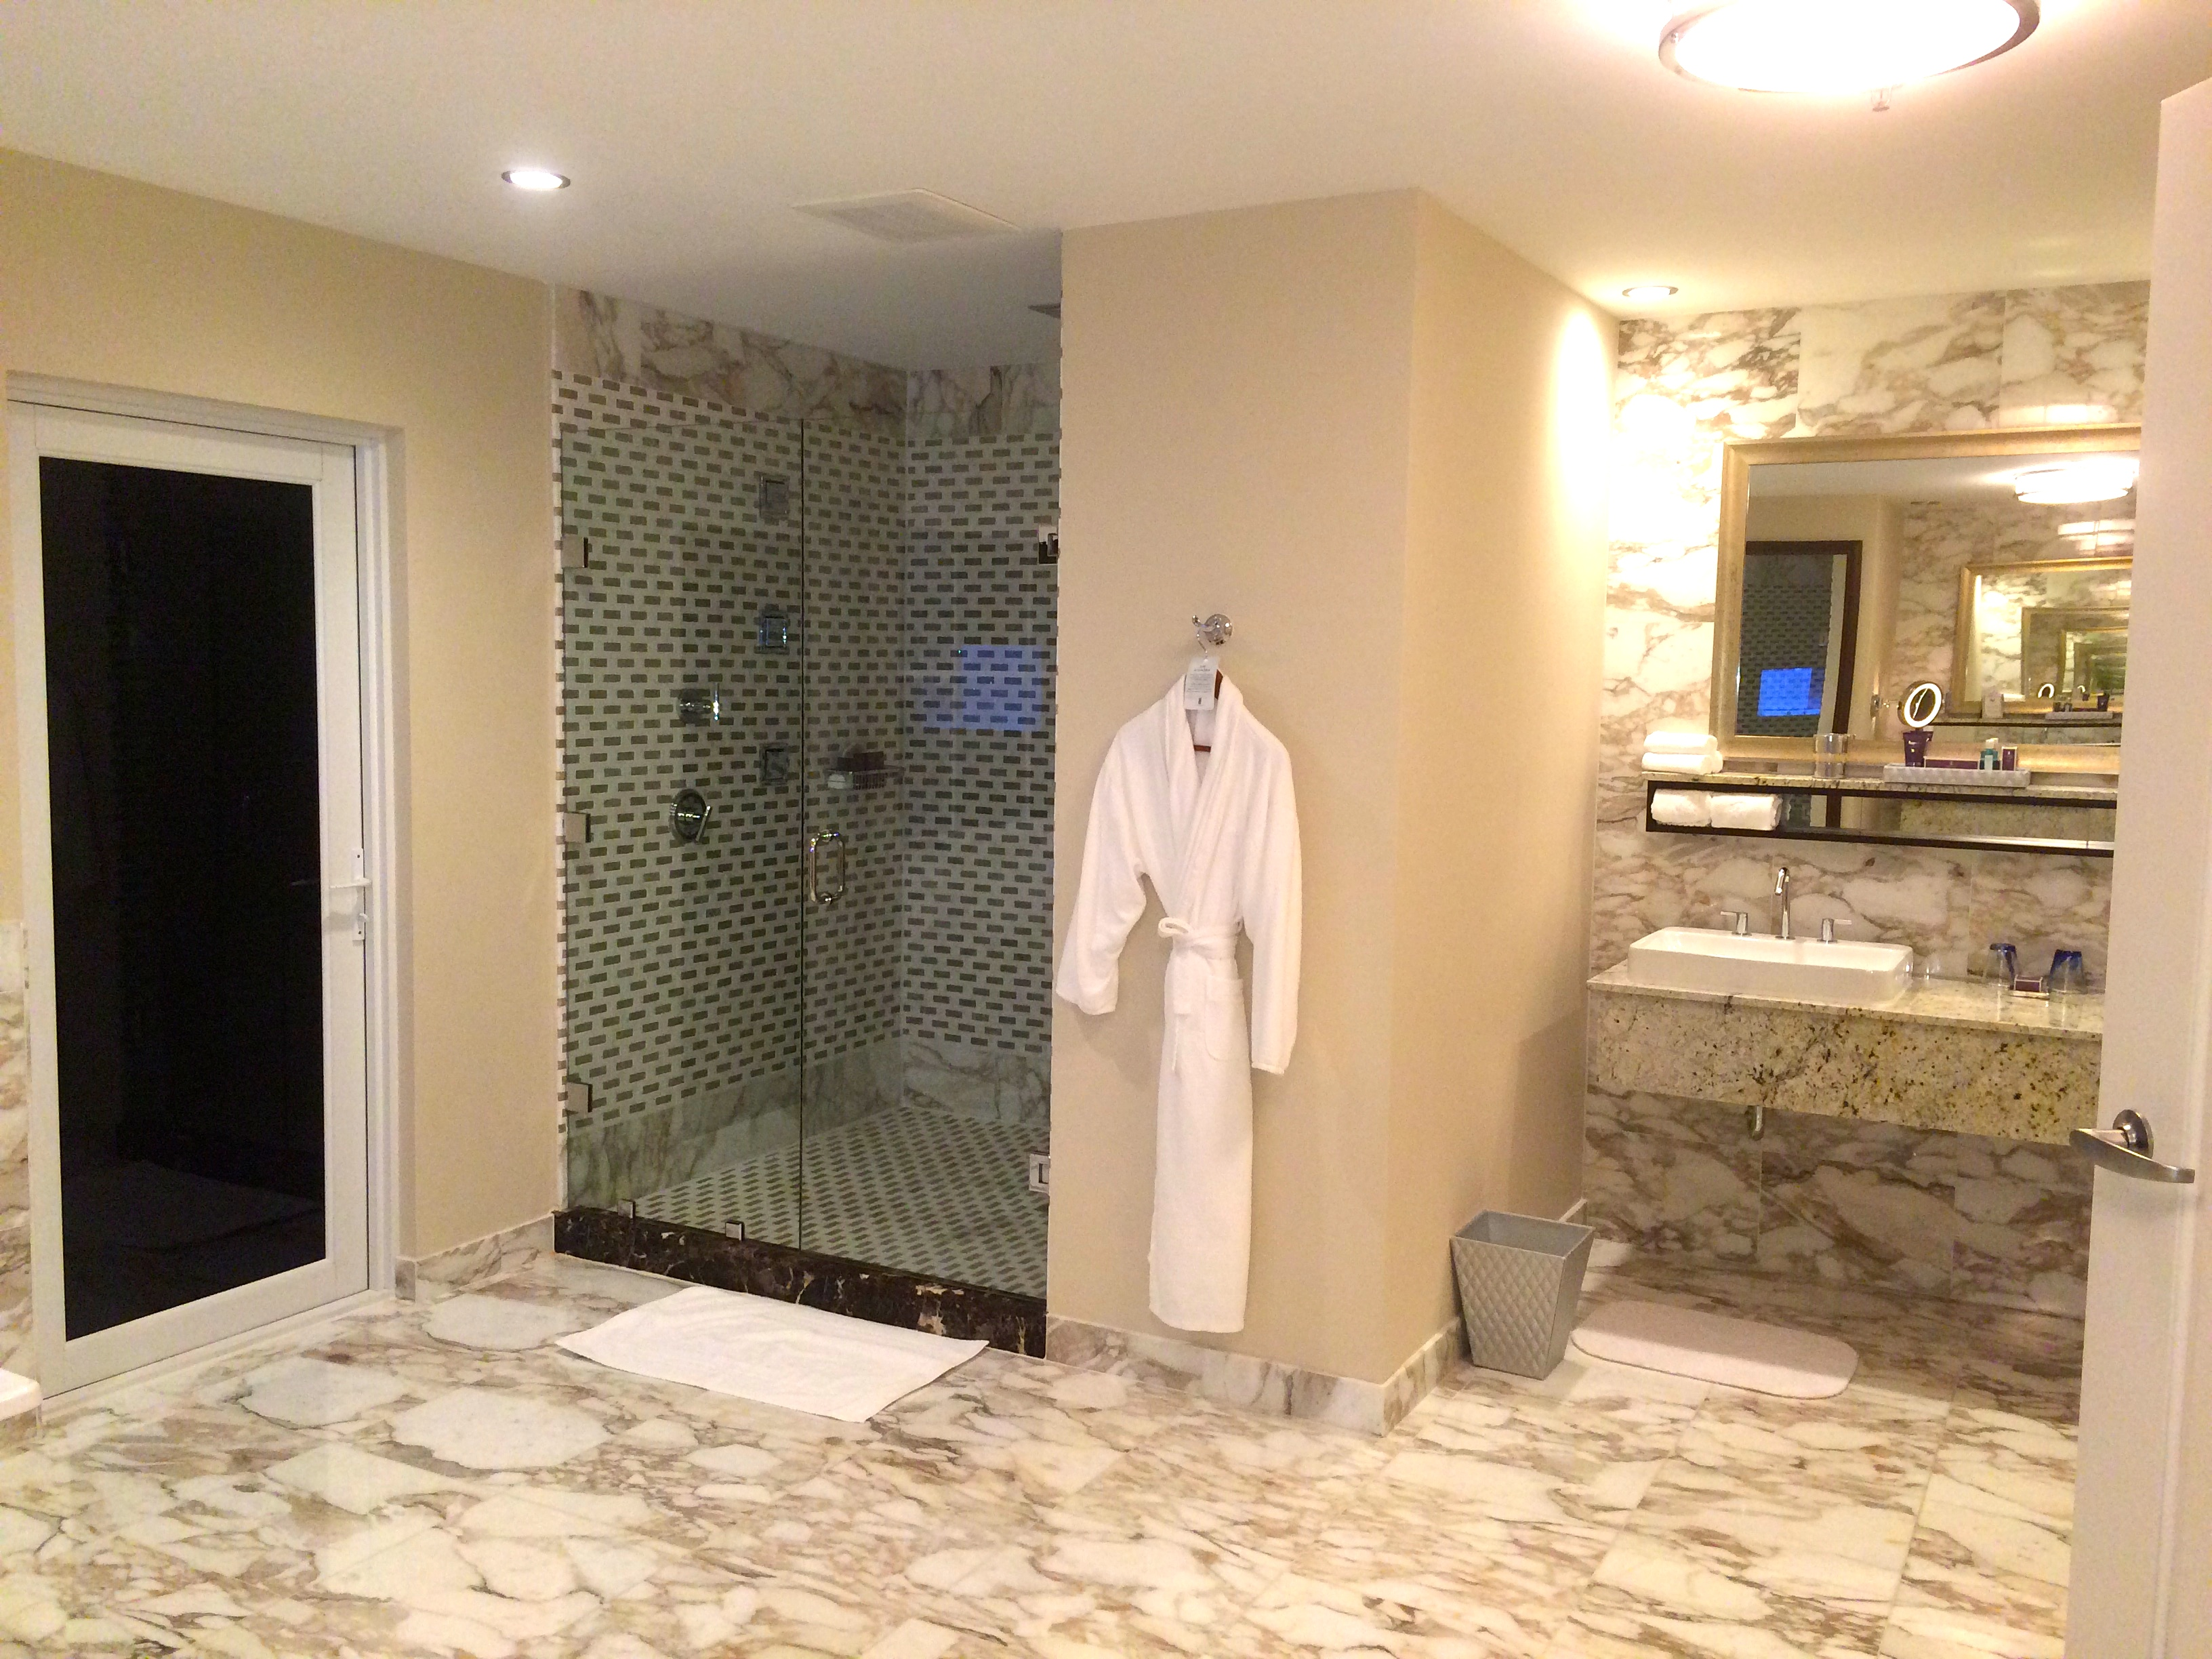 Ritz Carlton Suite master bathroom at Ritz Carlton Aruba. The Ritz Carlton Aruba   Katherine Gould  Luxury Travel Advisor